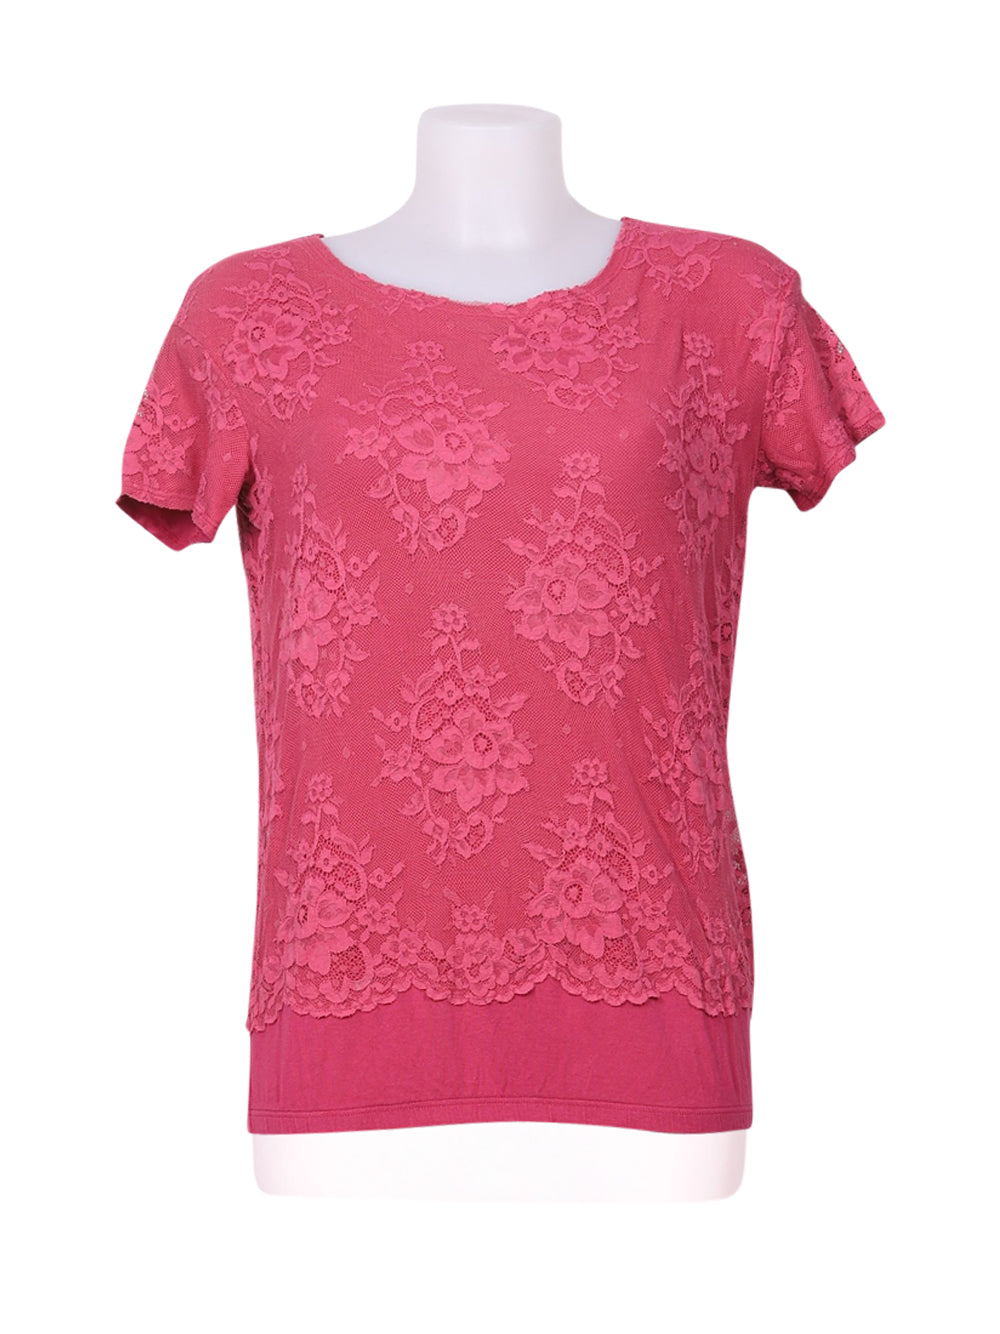 Front photo of Preloved Intimissimi Red Woman's t-shirt - size 8/S